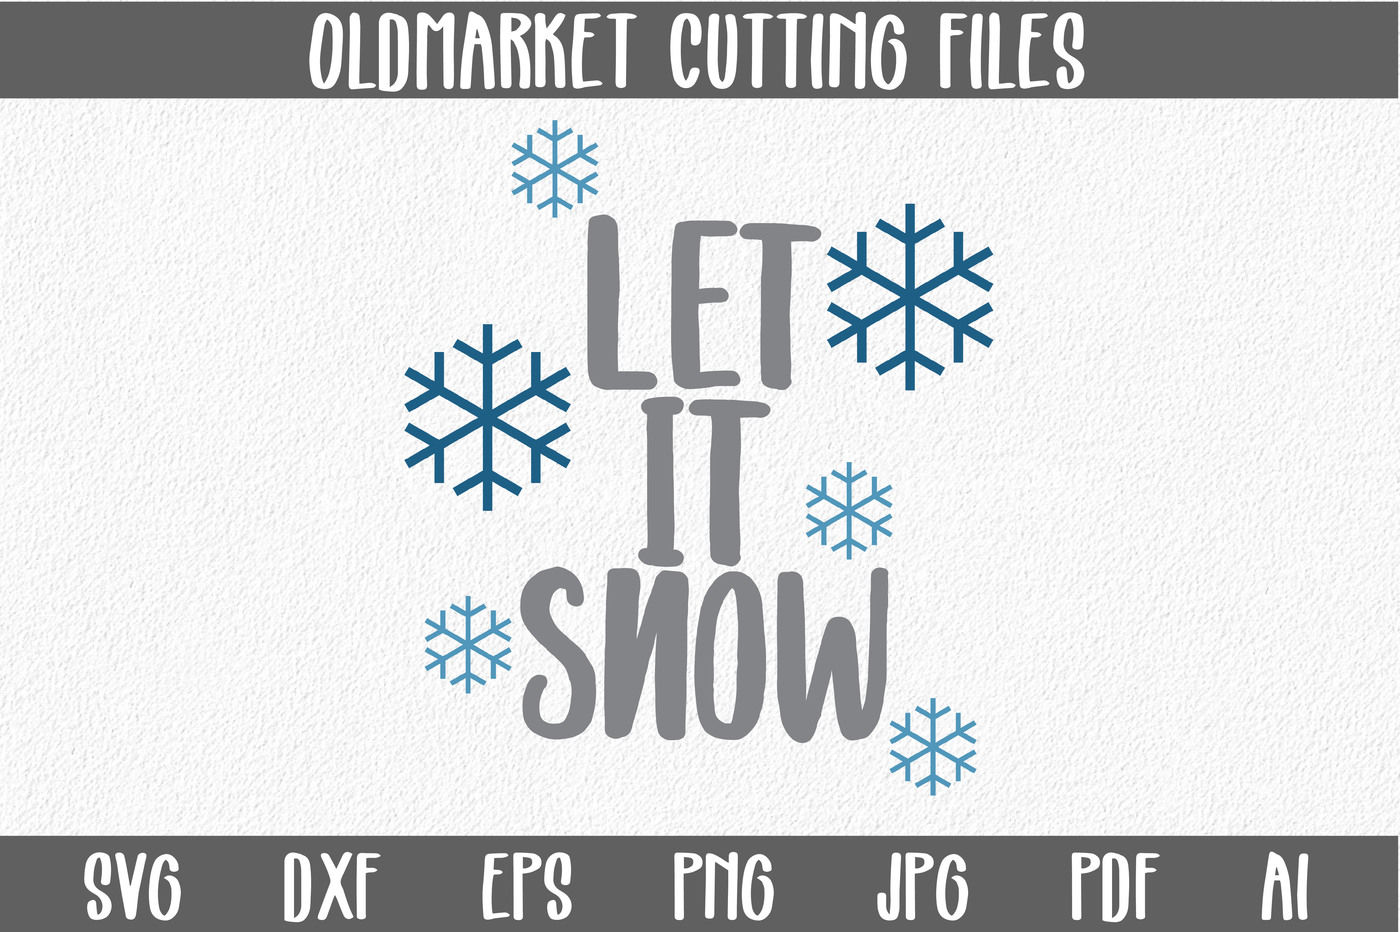 Let It Snow Svg Cut File Christmas Svg By Shannon Keyser Thehungryjpeg Com